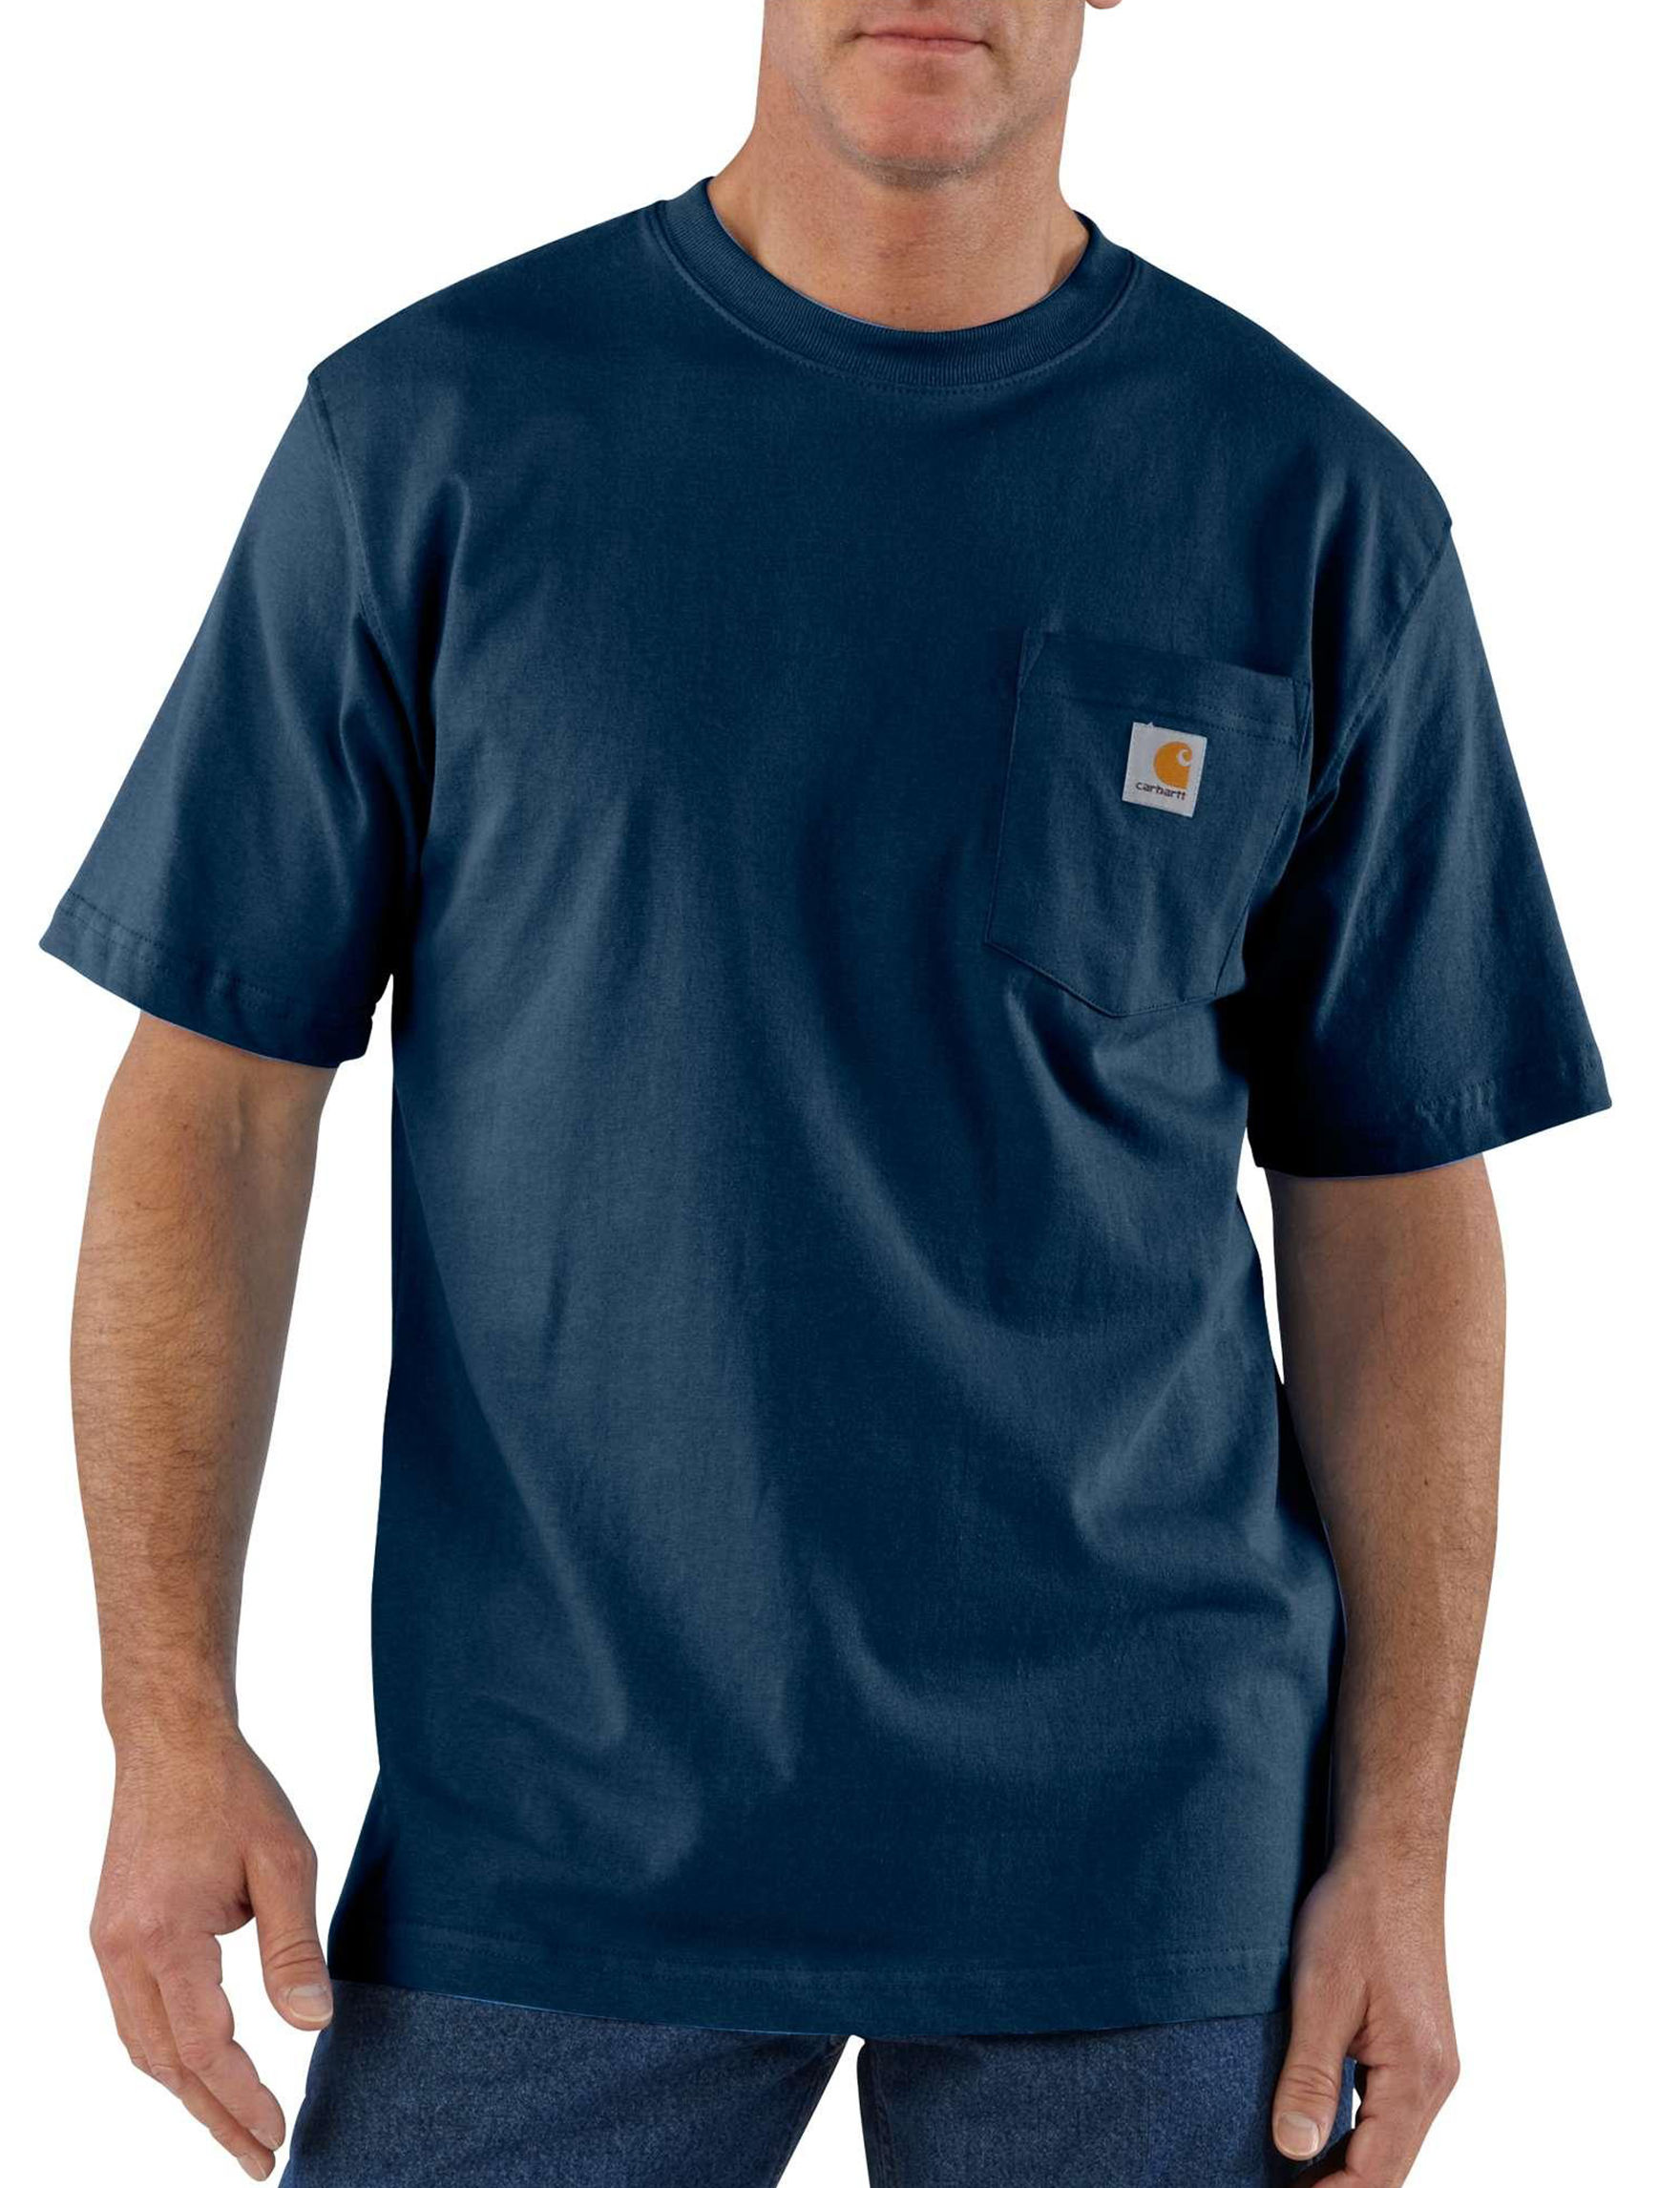 Carhartt Navy Tees & Tanks